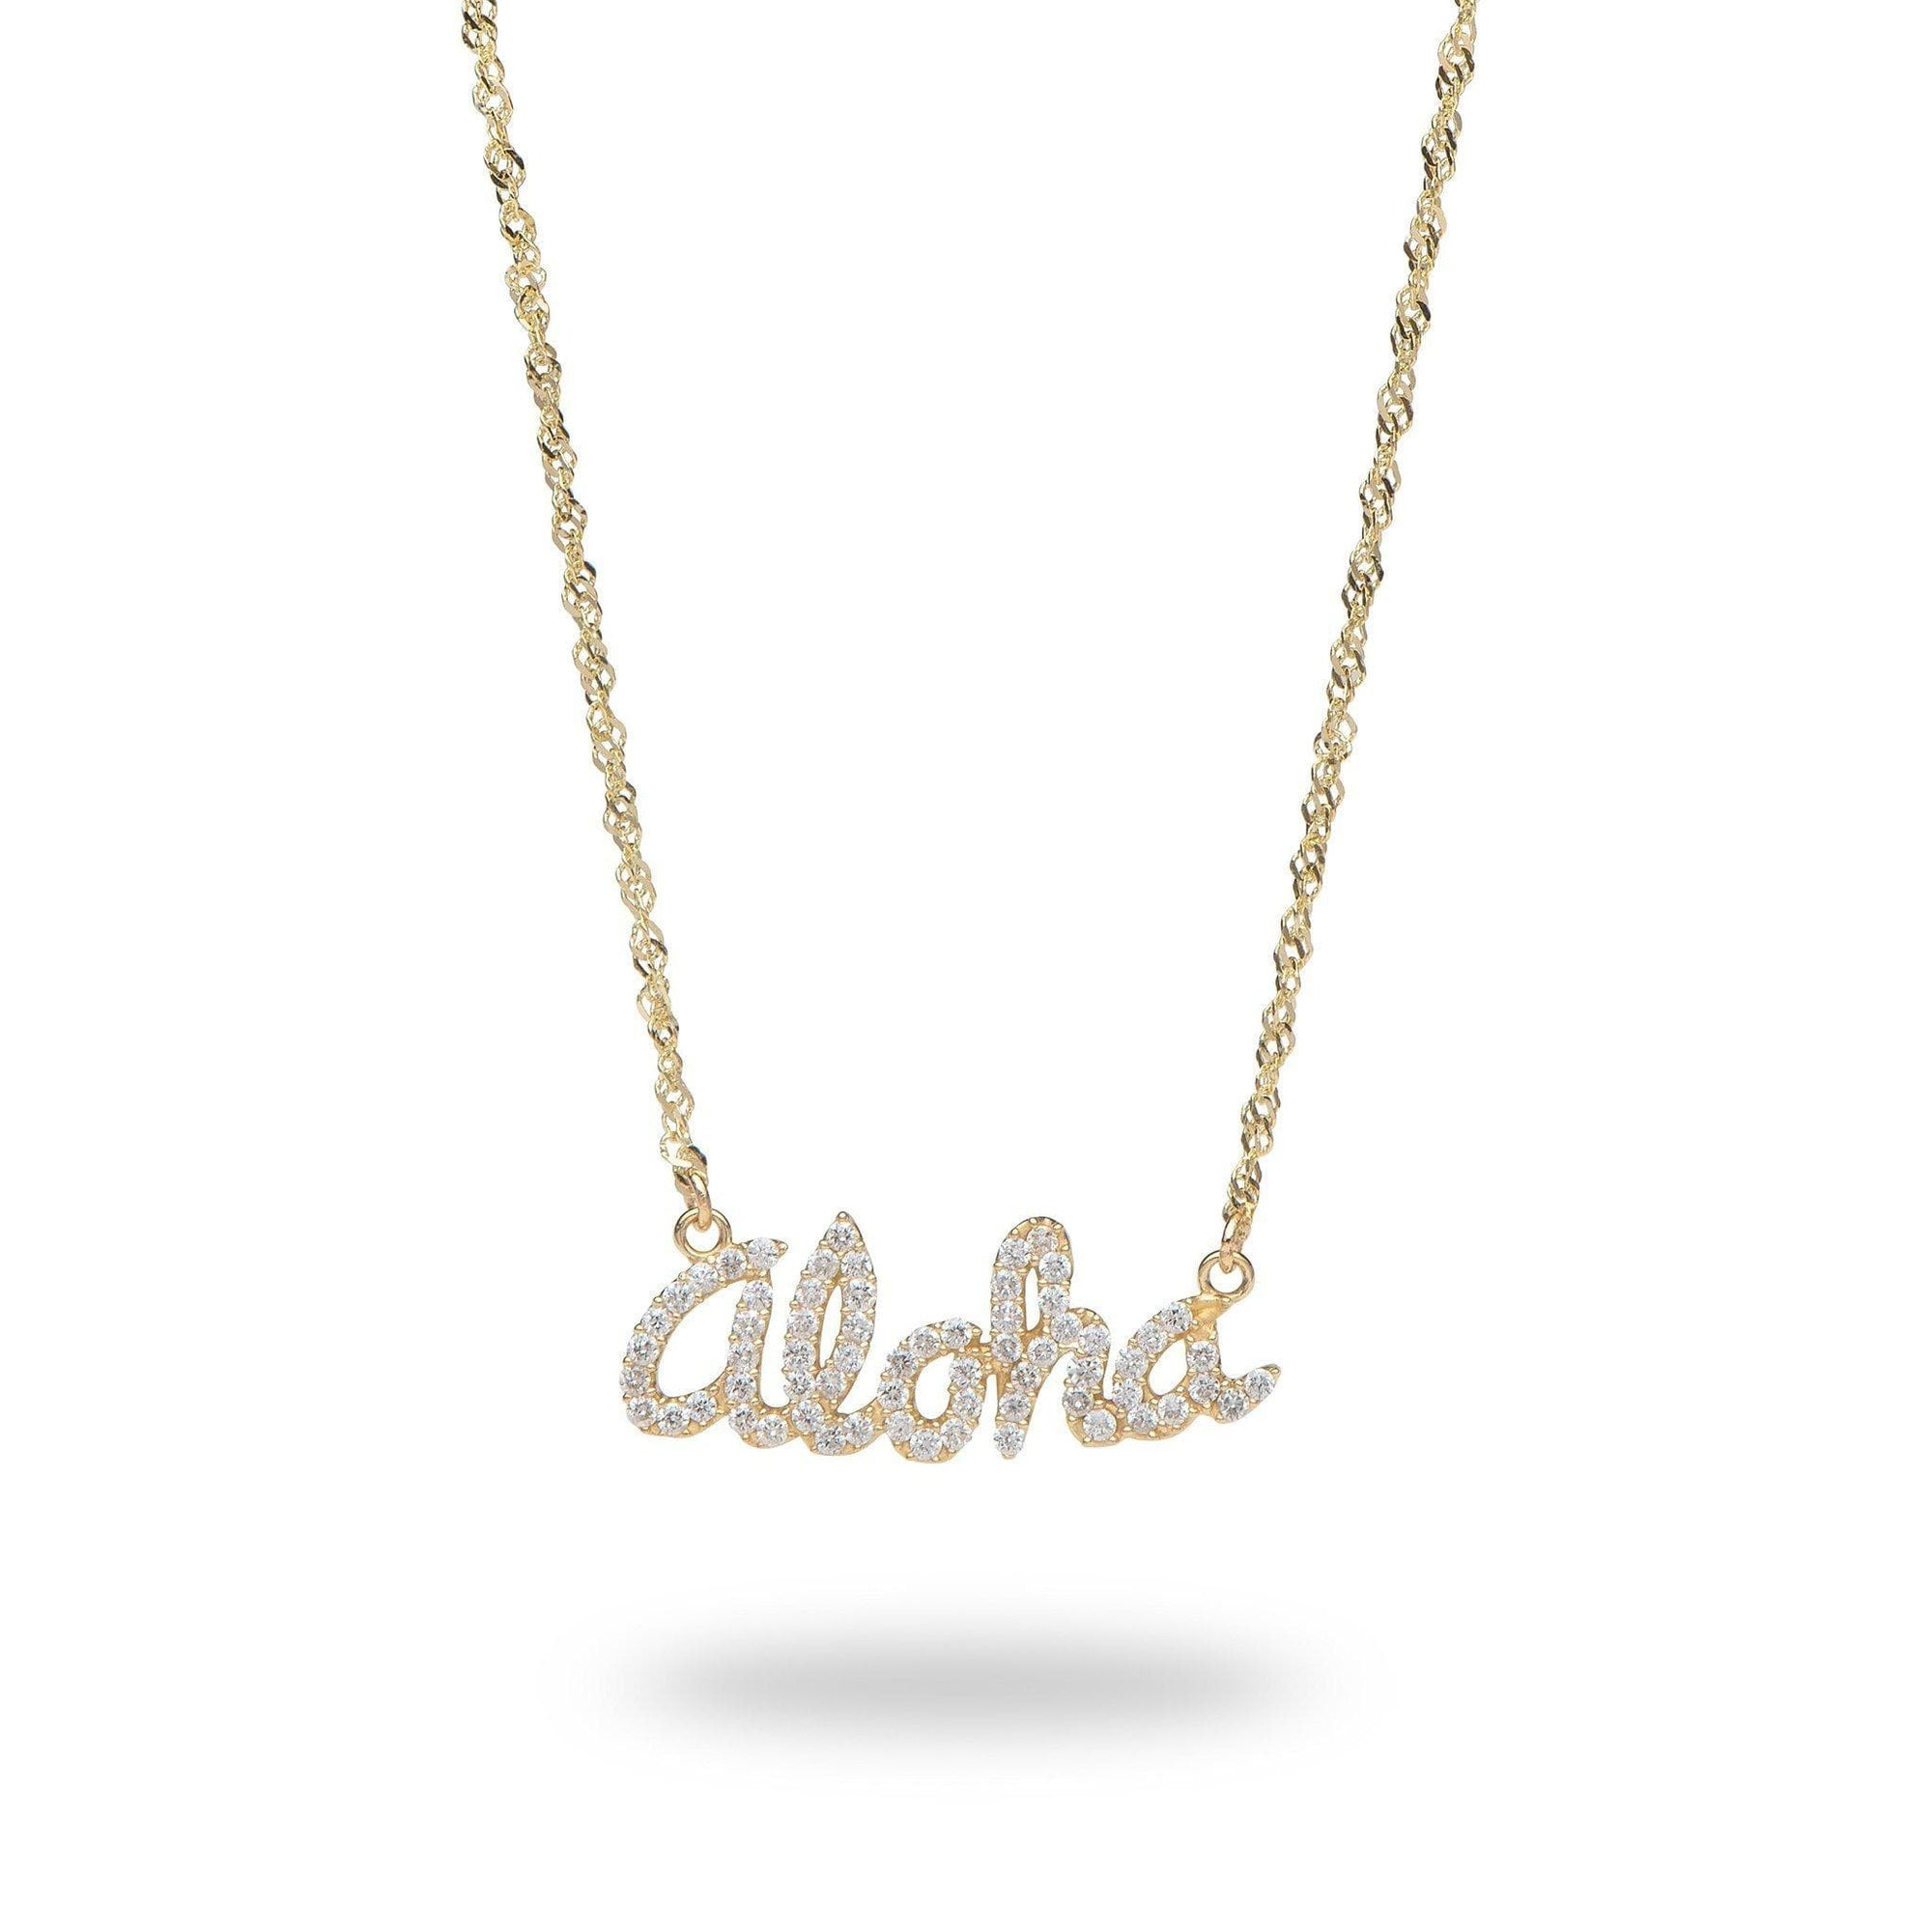 Aloha necklace in 14K Yellow with Diamond 100-01709